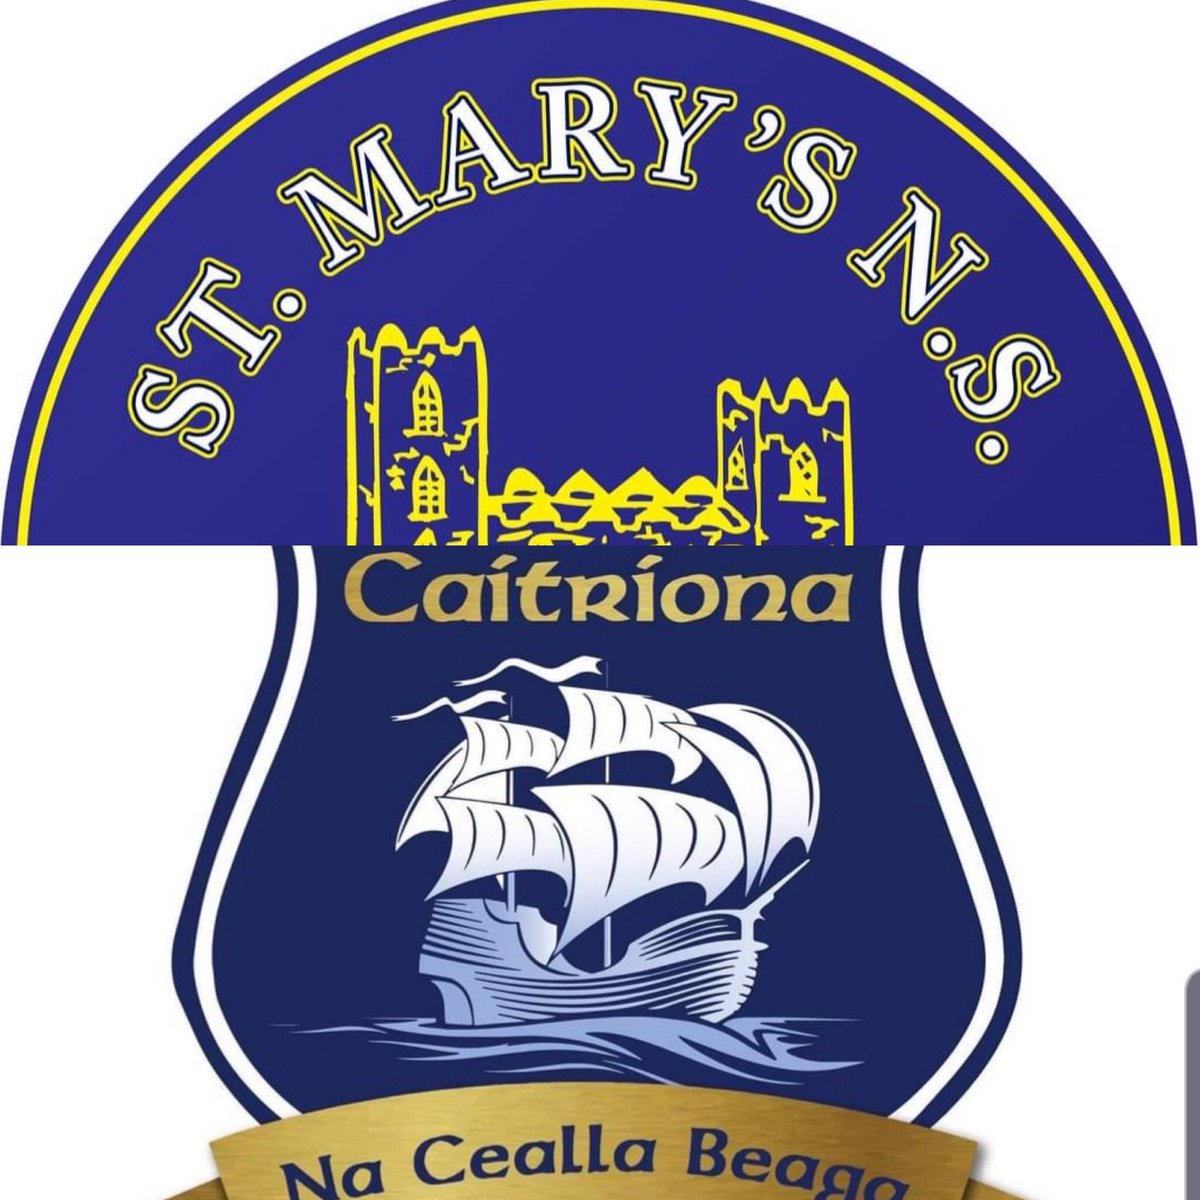 We're delighted with this news for our Killybegs school @StCatherinesVS. #WeAreDonegalETB https://t.co/3KTlhV0KDQ